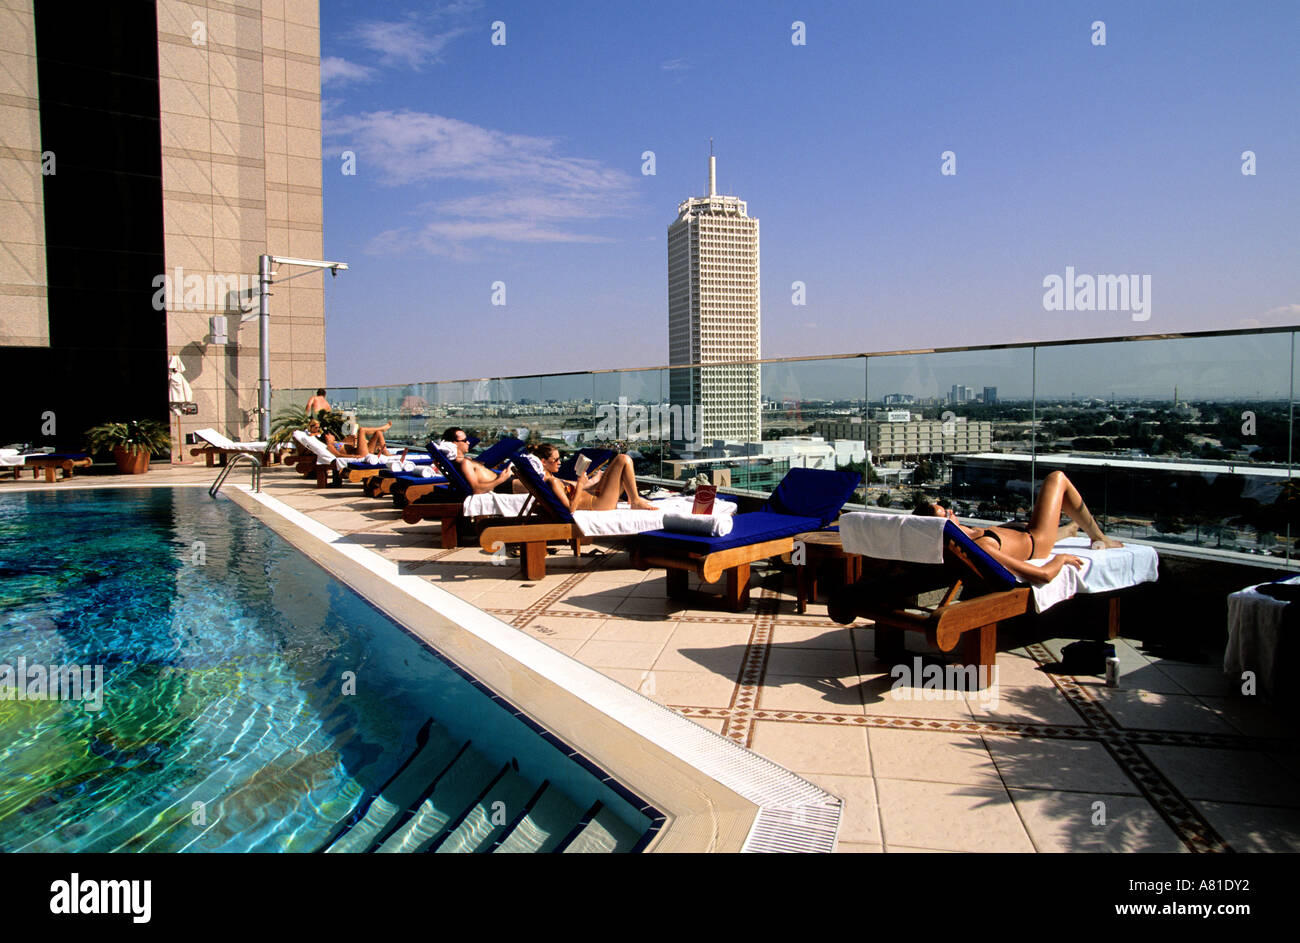 United Arab Emirates, Dubai, swimming pool on the roof of